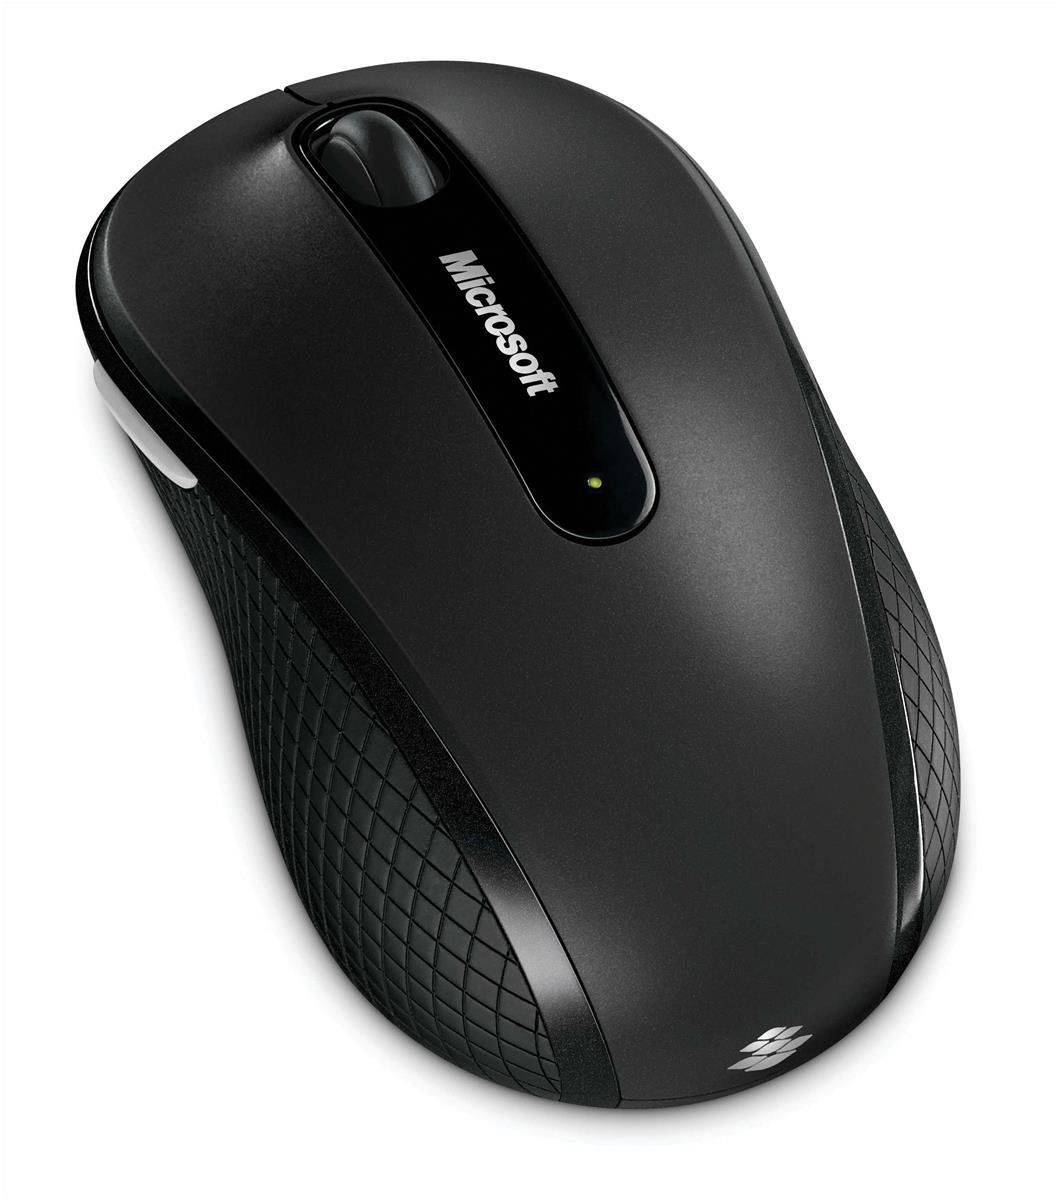 Microsoft Wireless Mobile Mouse 4000 Mac Os X Wire Center 200175 Circuitwriter Pen With Precision Conductive Ink Bluetrack Usb D5d 00004 Ccl Rh Cclonline Com